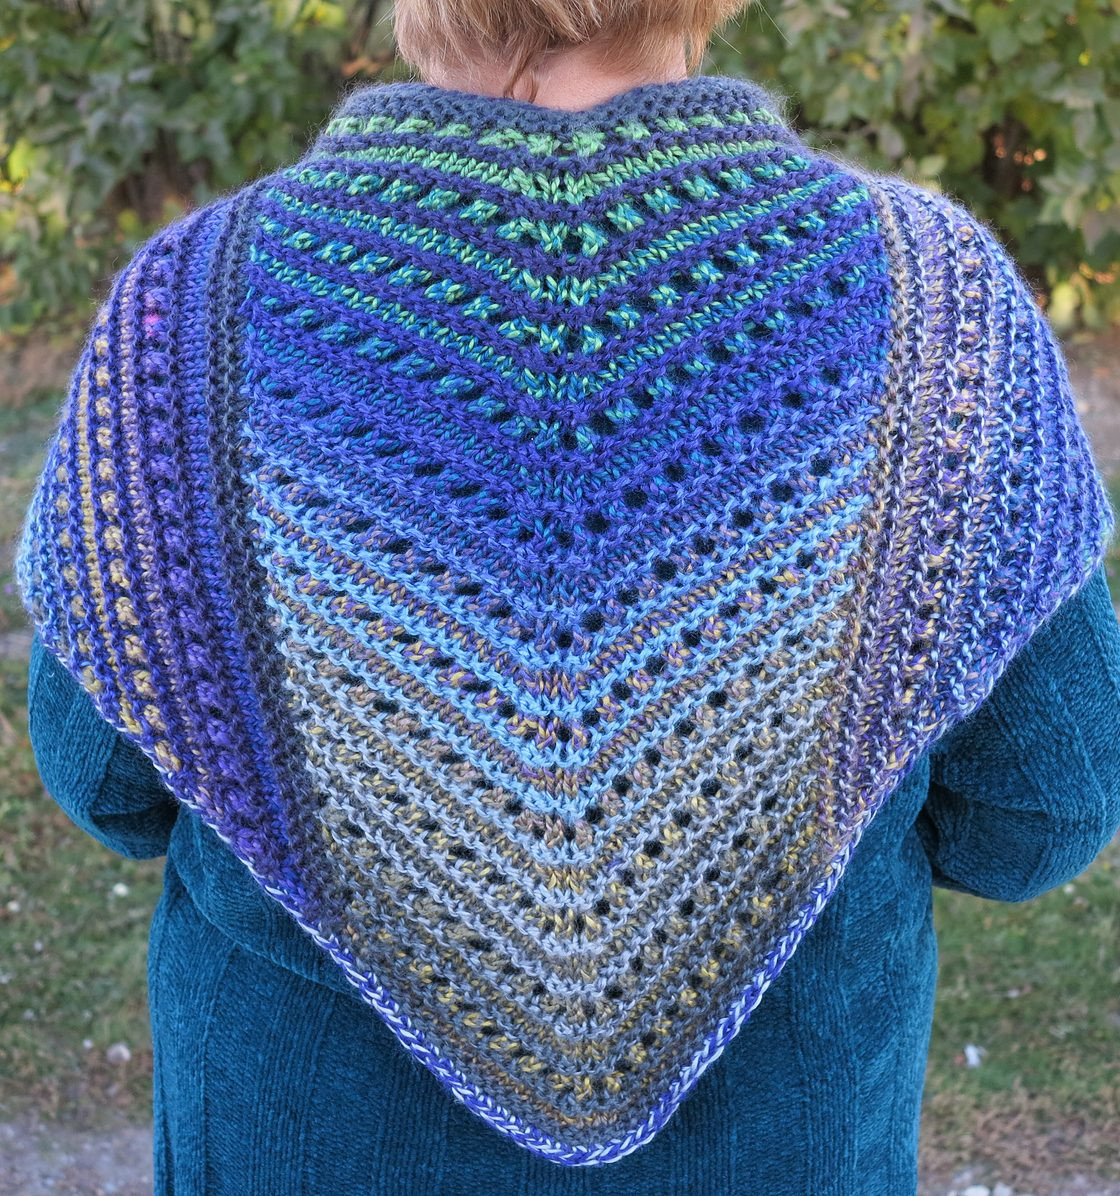 Crochet Shawl Pattern for Beginners Awesome Shawls for Bulky Yarn Knitting Patterns In the Loop Of Innovative 47 Images Crochet Shawl Pattern for Beginners